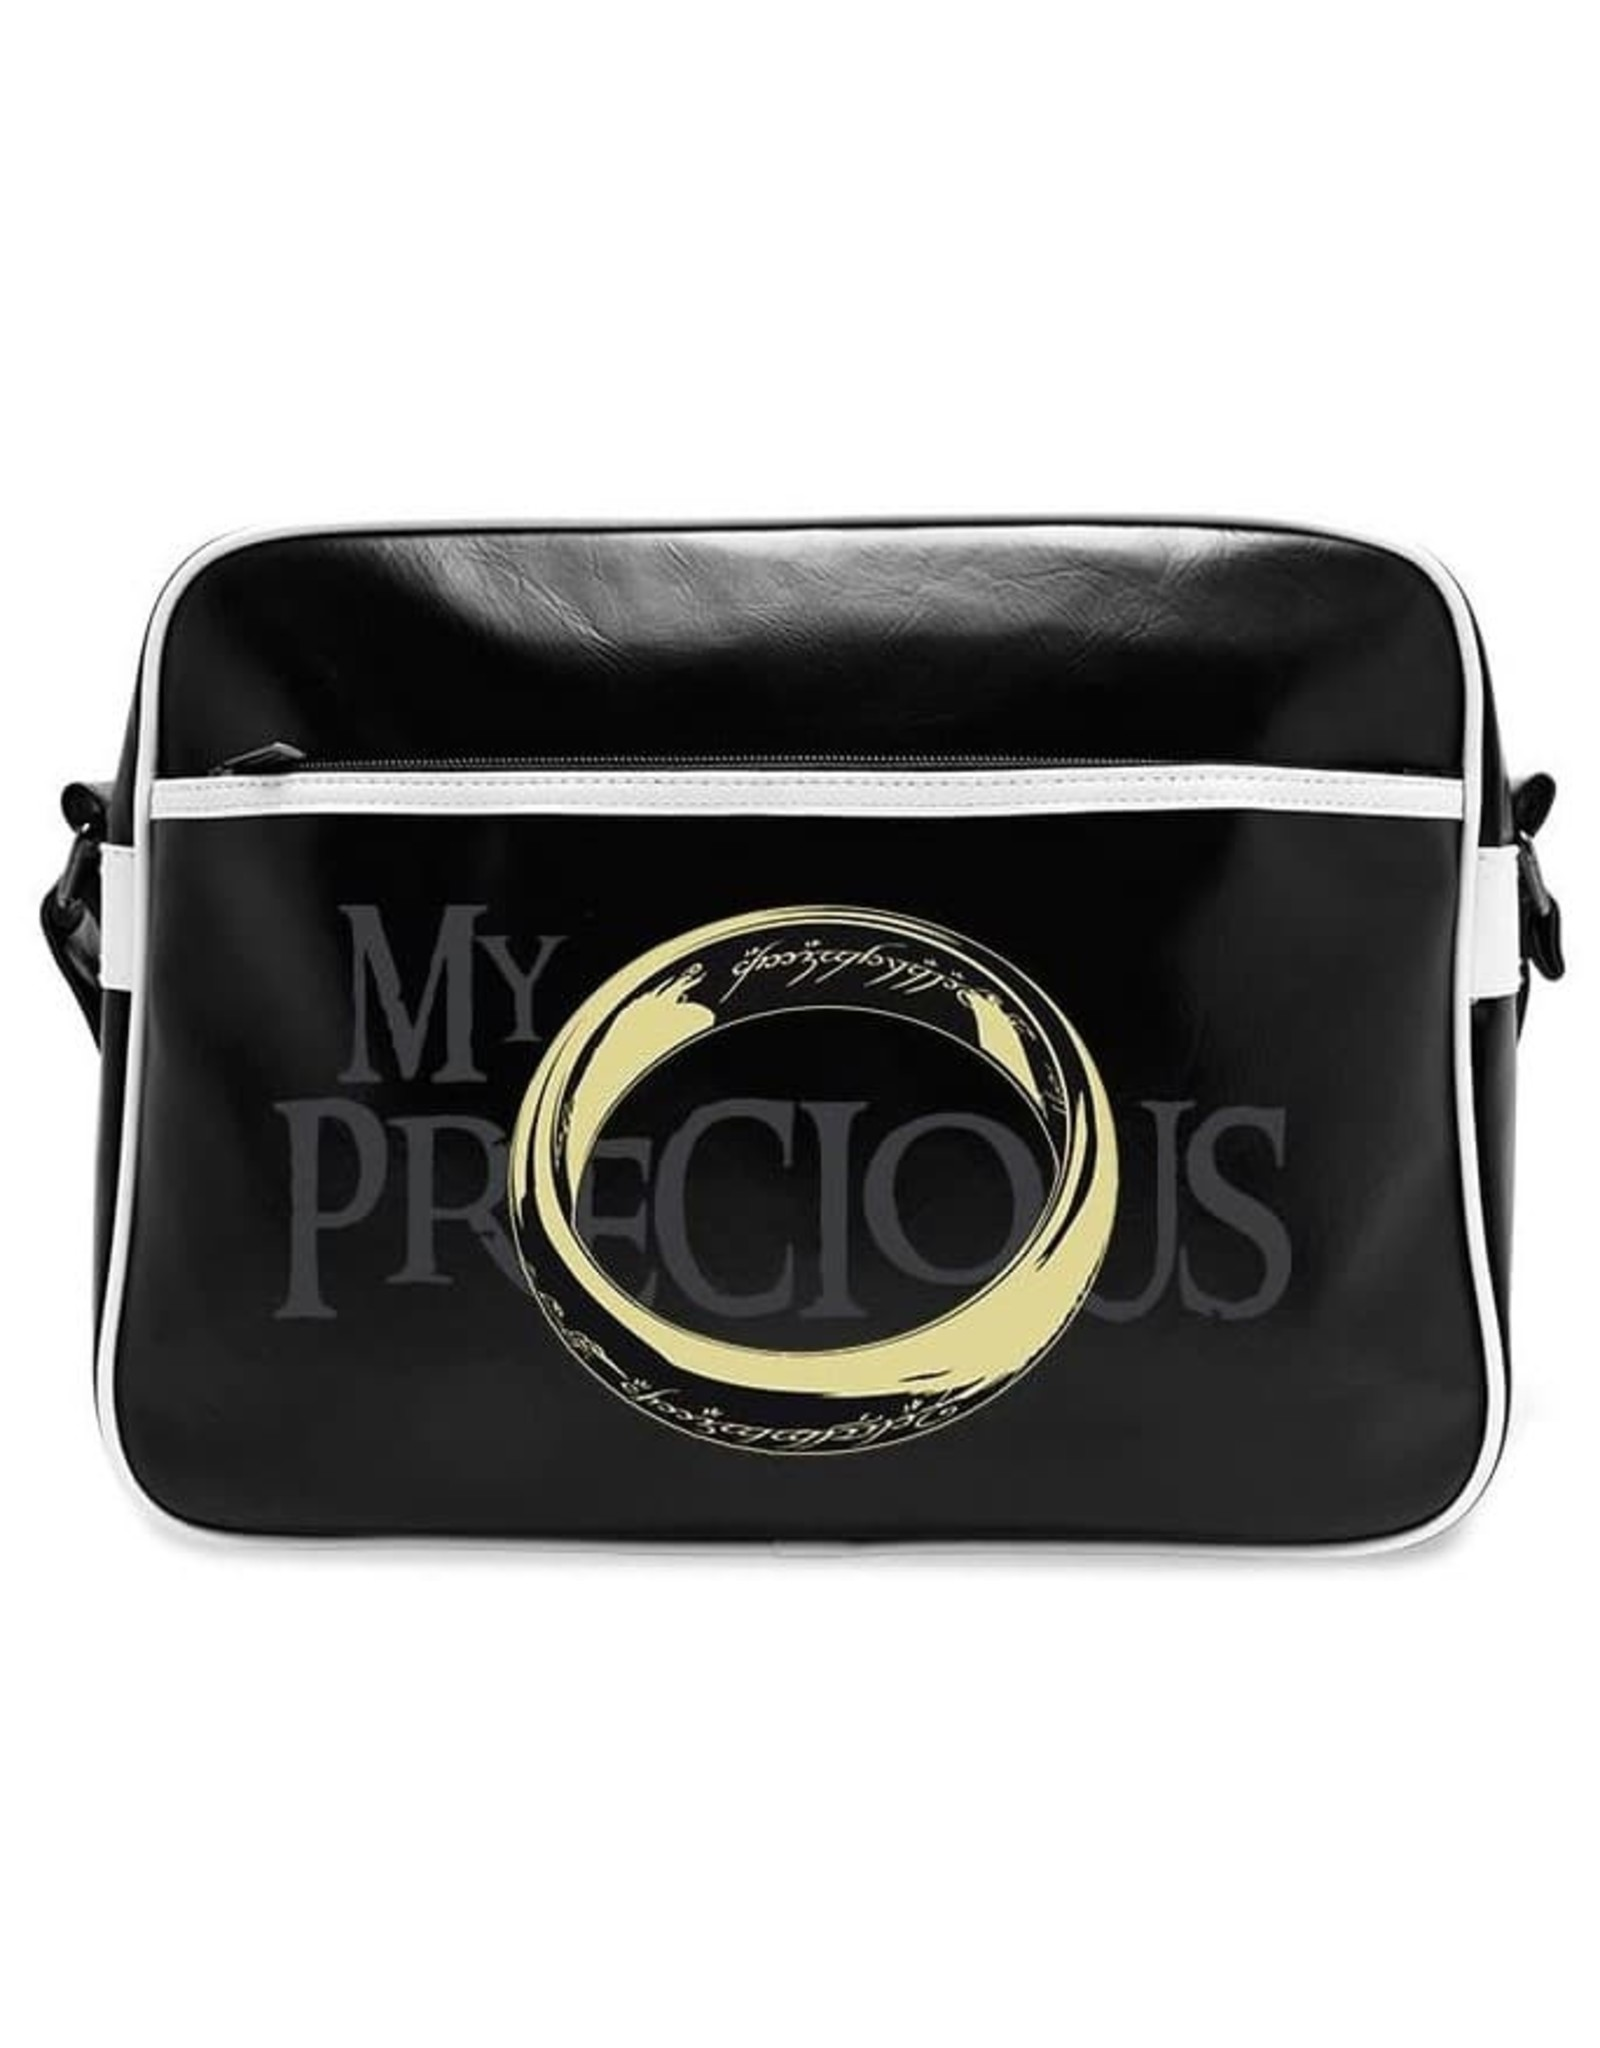 Lord of the Rings Merchandise tassen - The Lord of the Rings The One Ring Messenger tas